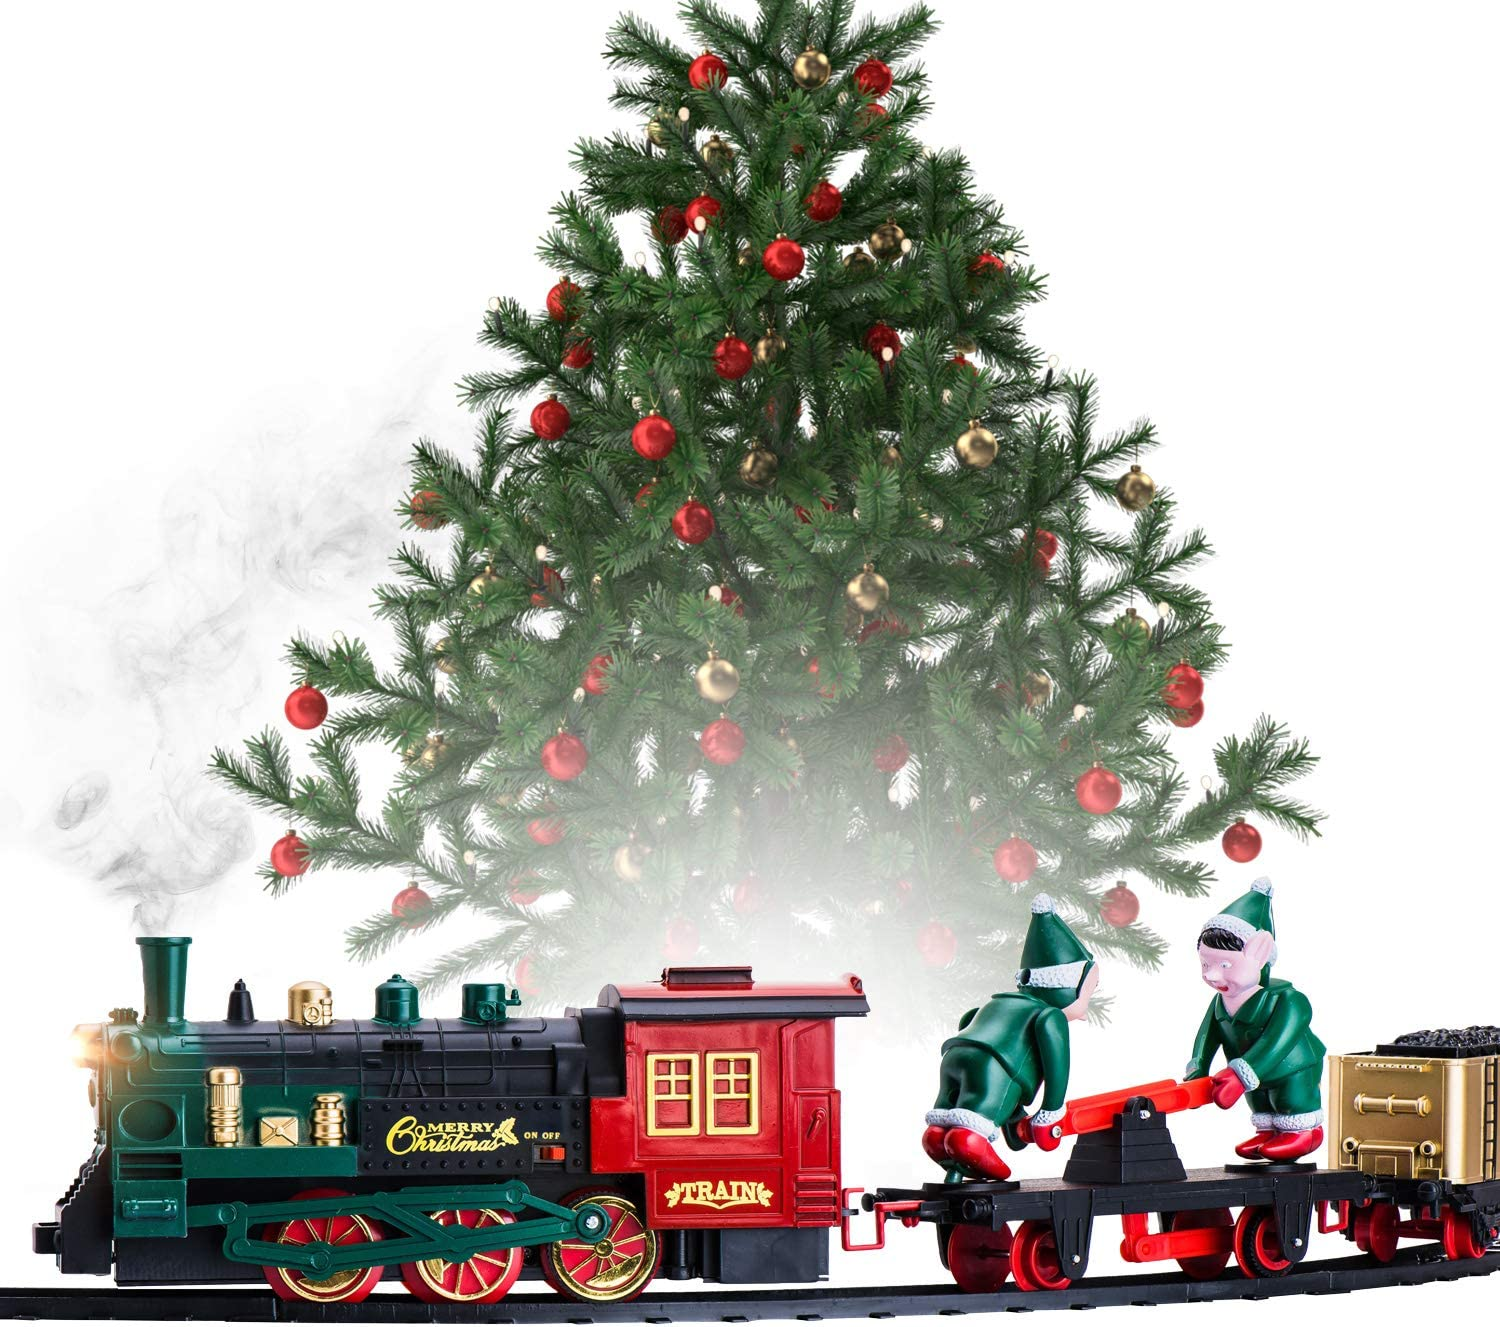 Christmas Train Set for Under the Tree with Smoke, Lights, and Sounds - Train Around Christmas Tree w/ Large Tracks | Battery Operated Electric Train Set with 160 Inches of Track and 2 Xmas Elves